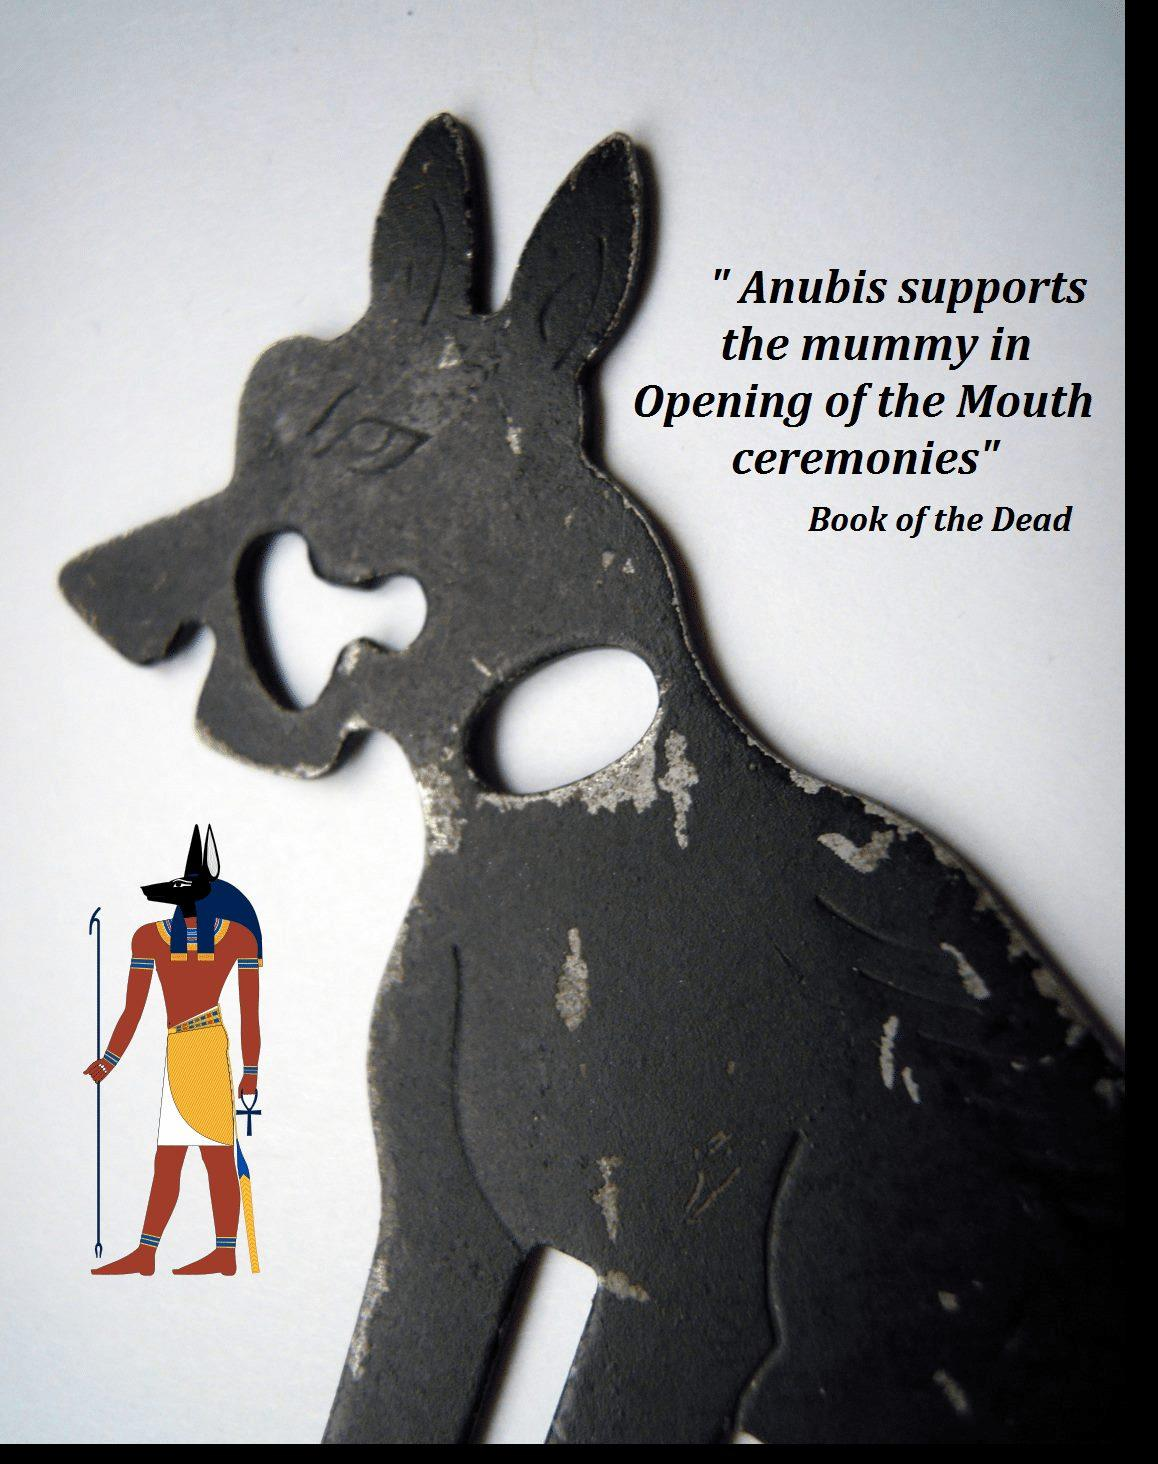 Mystery of the canadian anubis amulet adept initiates anubis amulet biocorpaavc Gallery